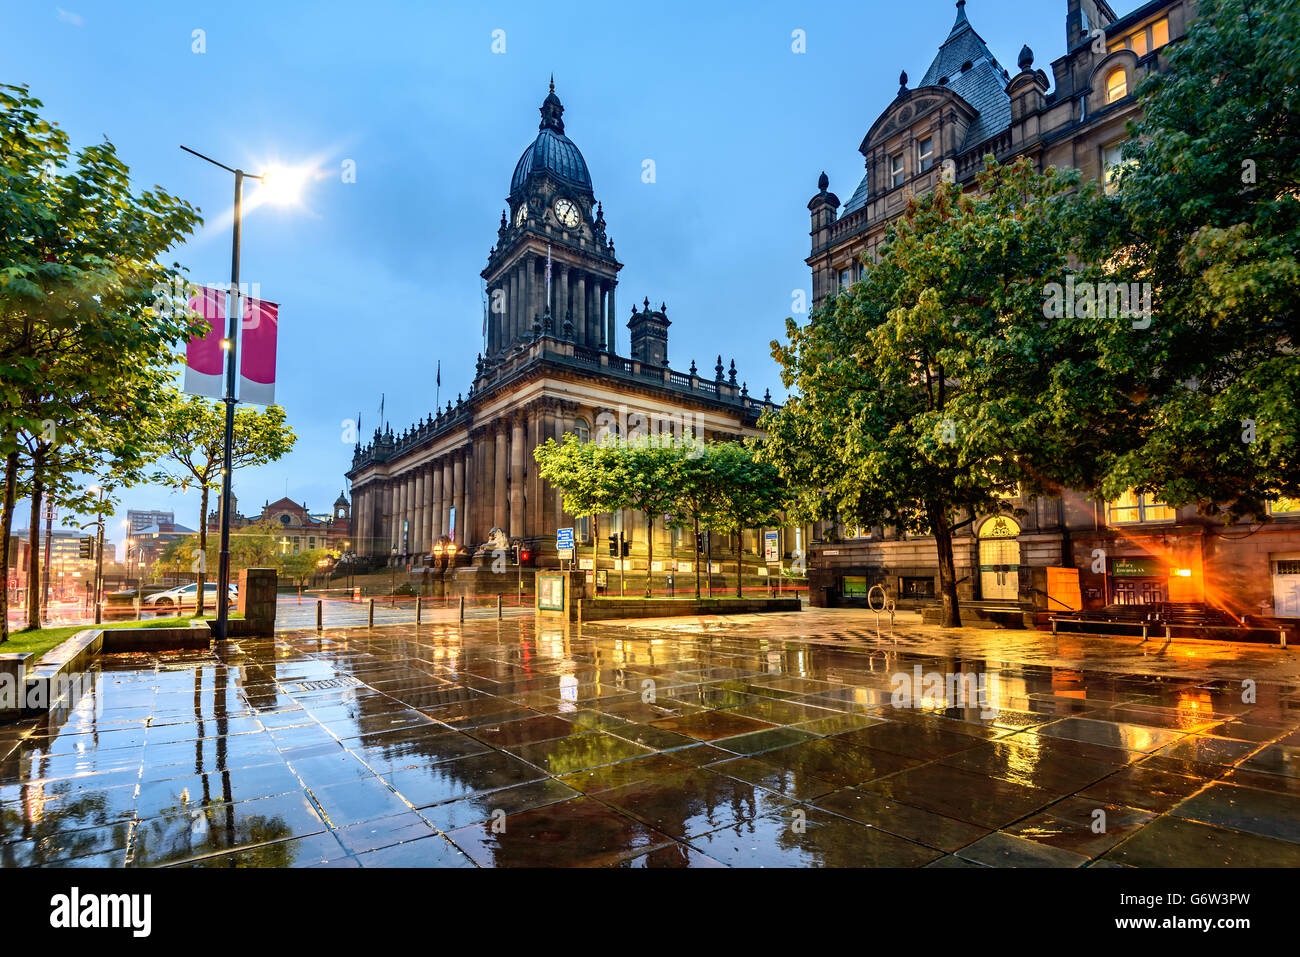 Leeds Town Hall was built  on Park Lane (now The Headrow), Leeds, West Yorkshire, England. - Stock Image